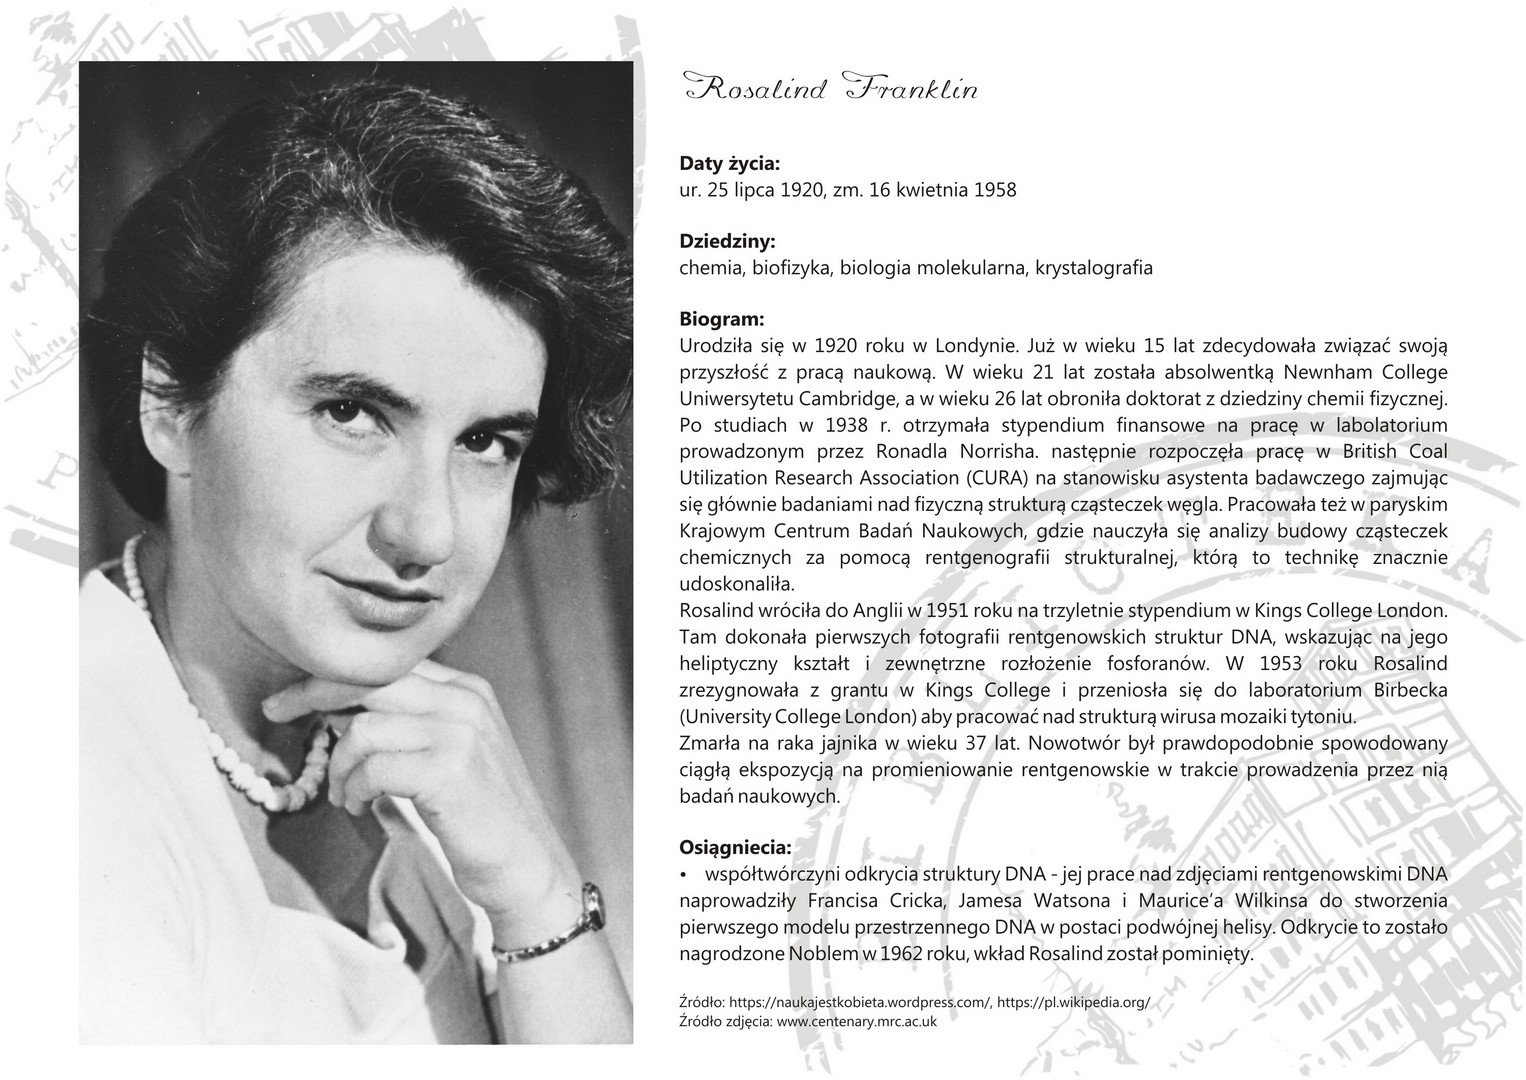 franklin rosalind 1920 1958 essay Rosalind franklin (1920-1958) (franklin, rosalind) franklin, muriel franklin's work was published third in the series of nature papers that announced the.